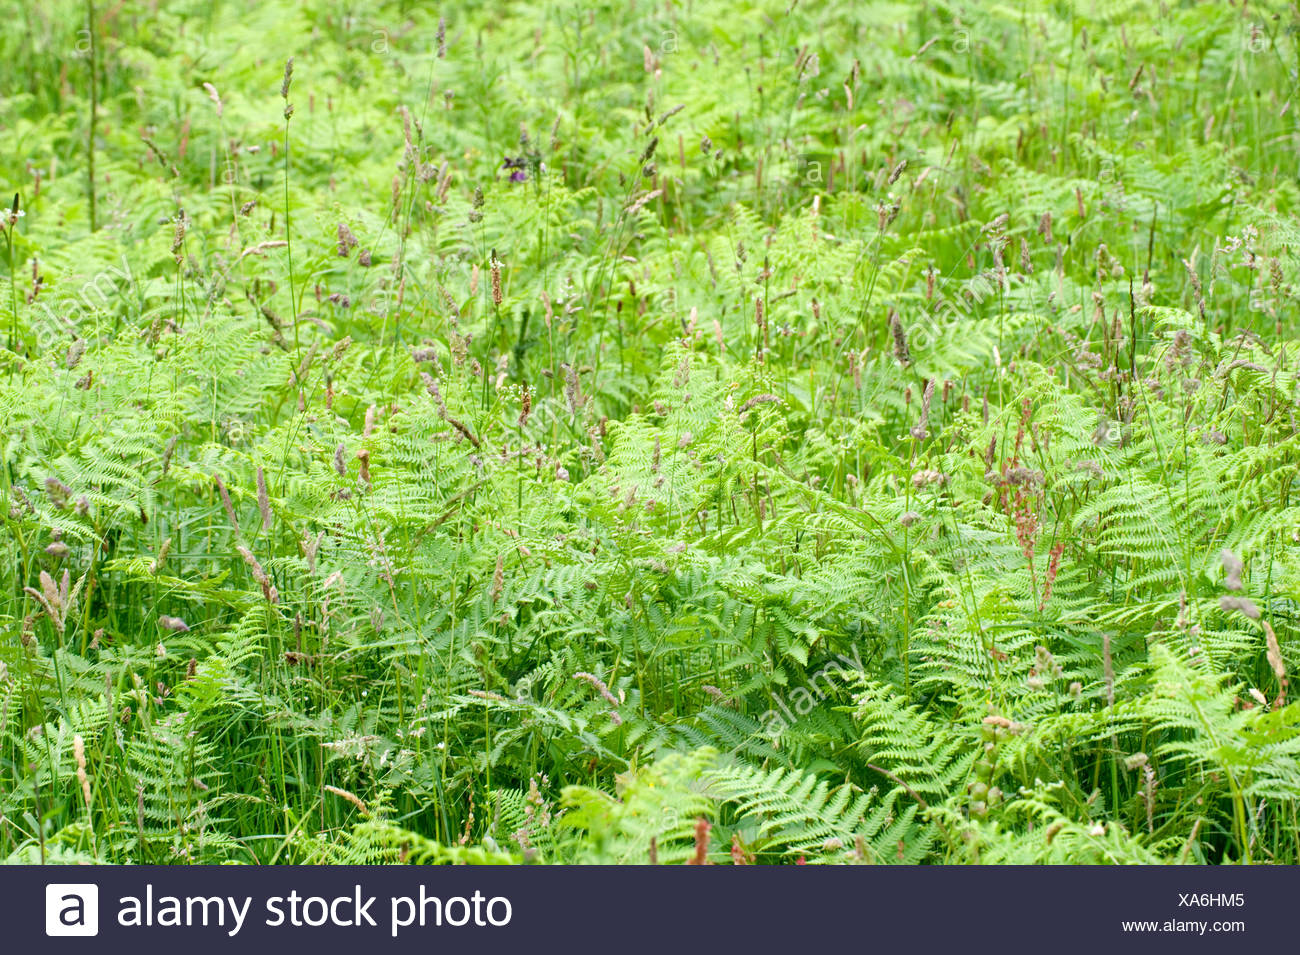 Fern Bracken Leaves, Cowden Pastures, Kent UK - Stock Image